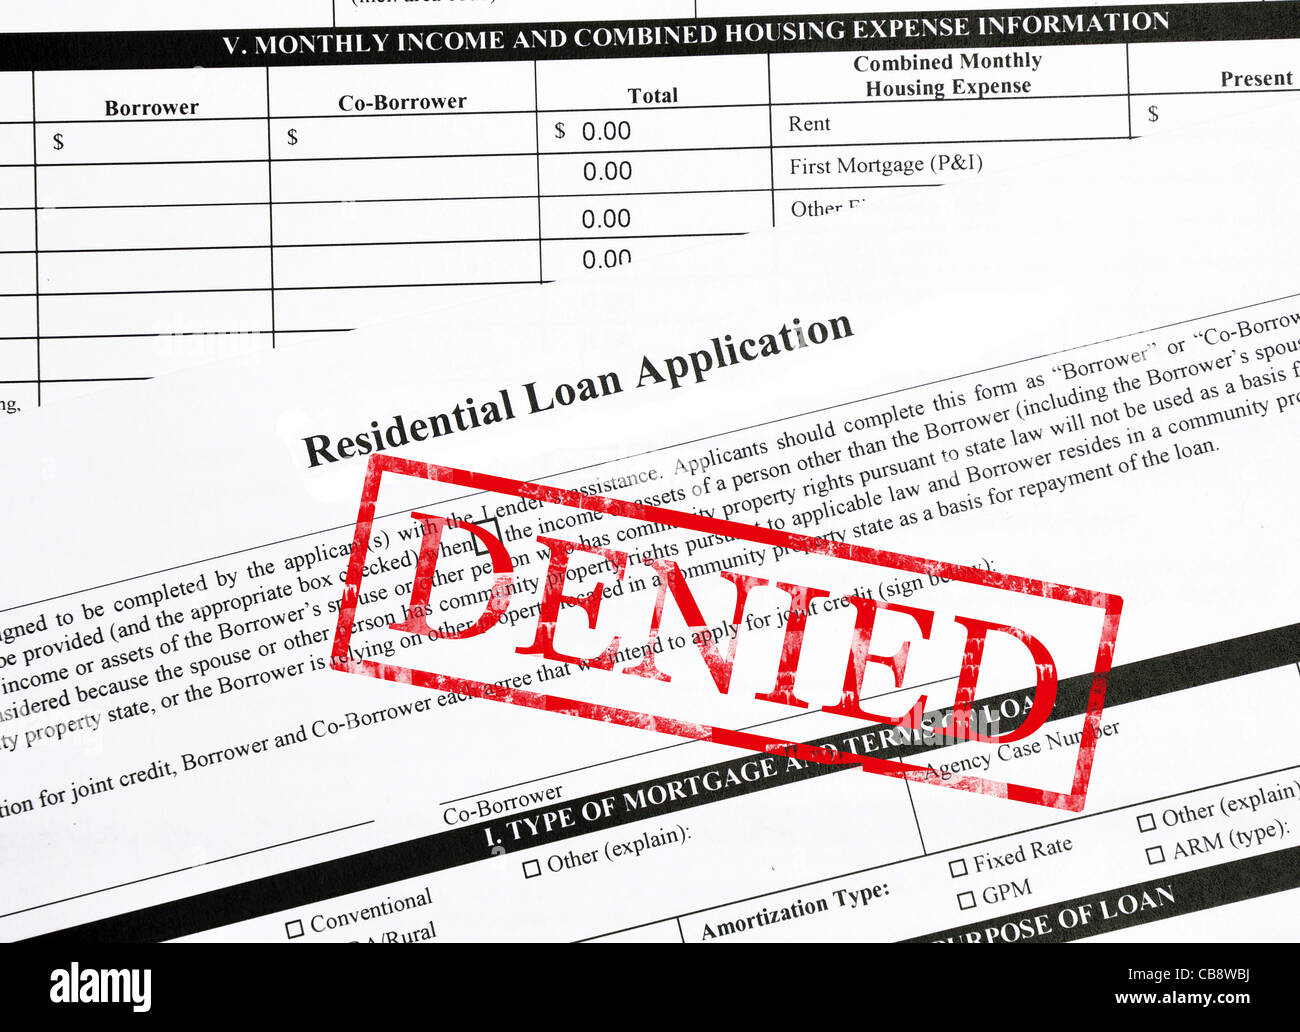 Denied stamp on a residential mortgage loan - Stock Image